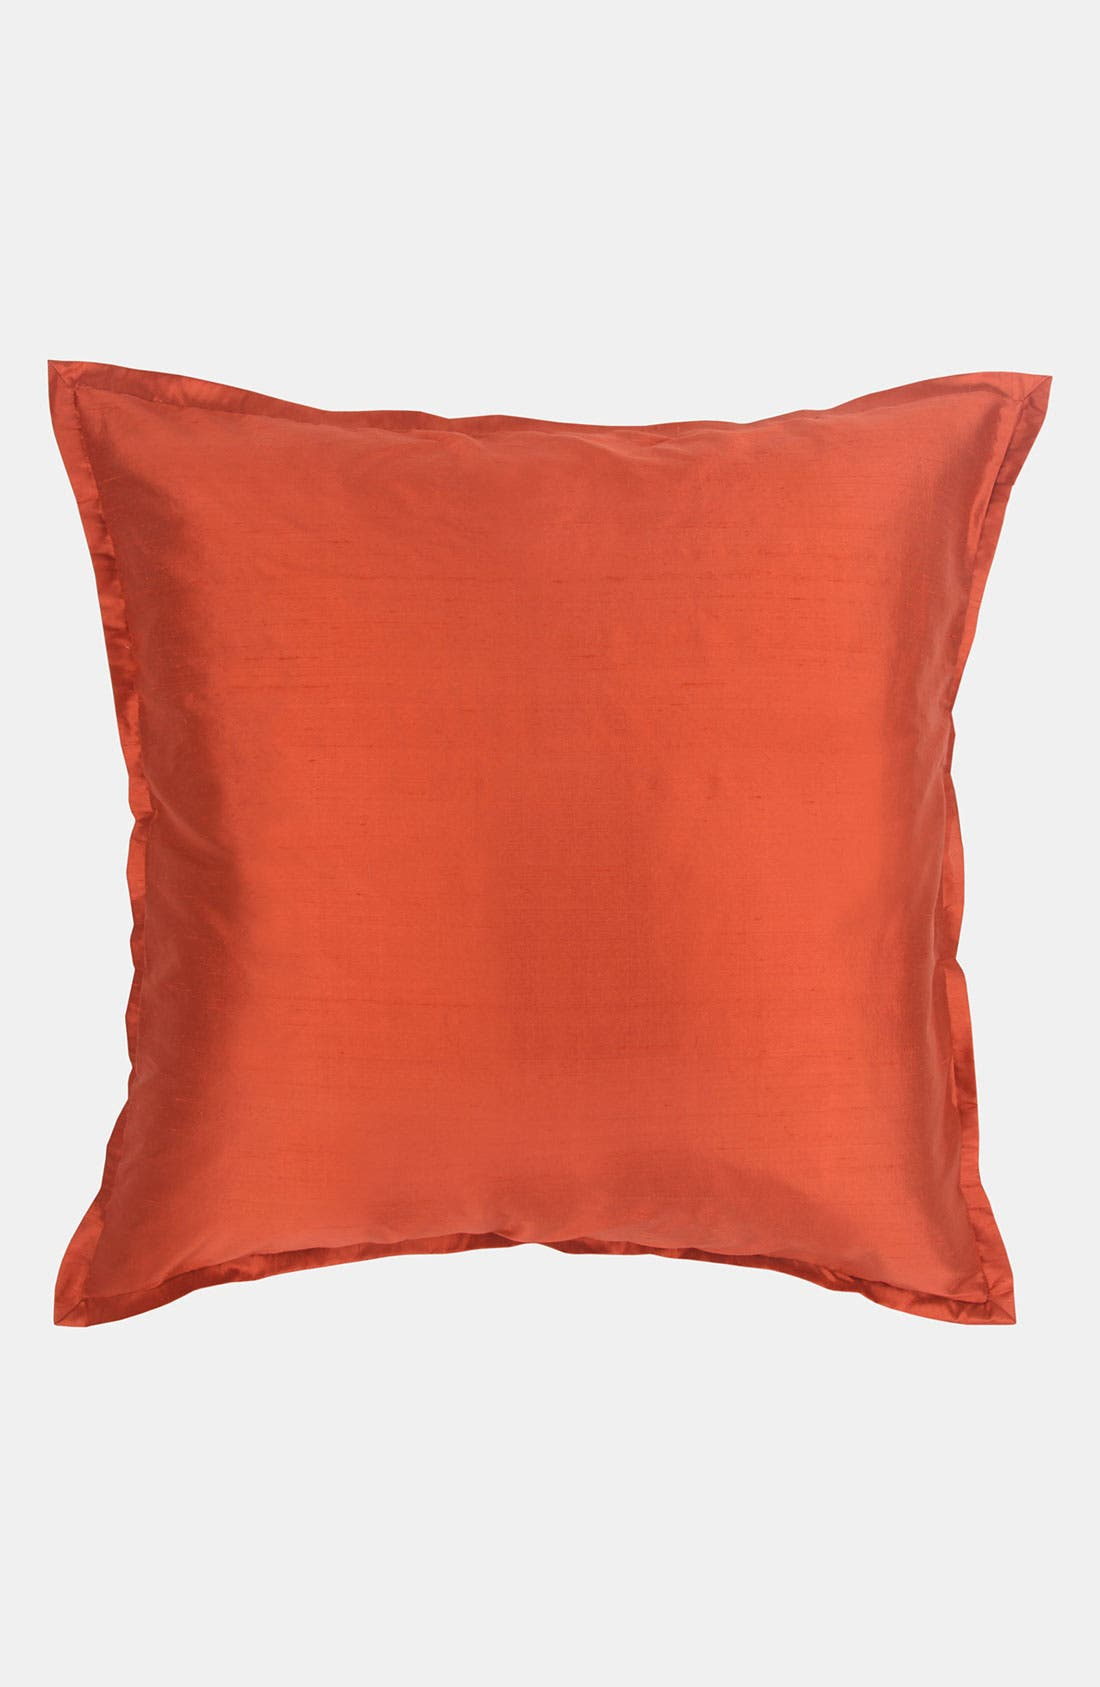 Alternate Image 1 Selected - Blissliving Home 'Lucca' Euro Pillow (Online Only)